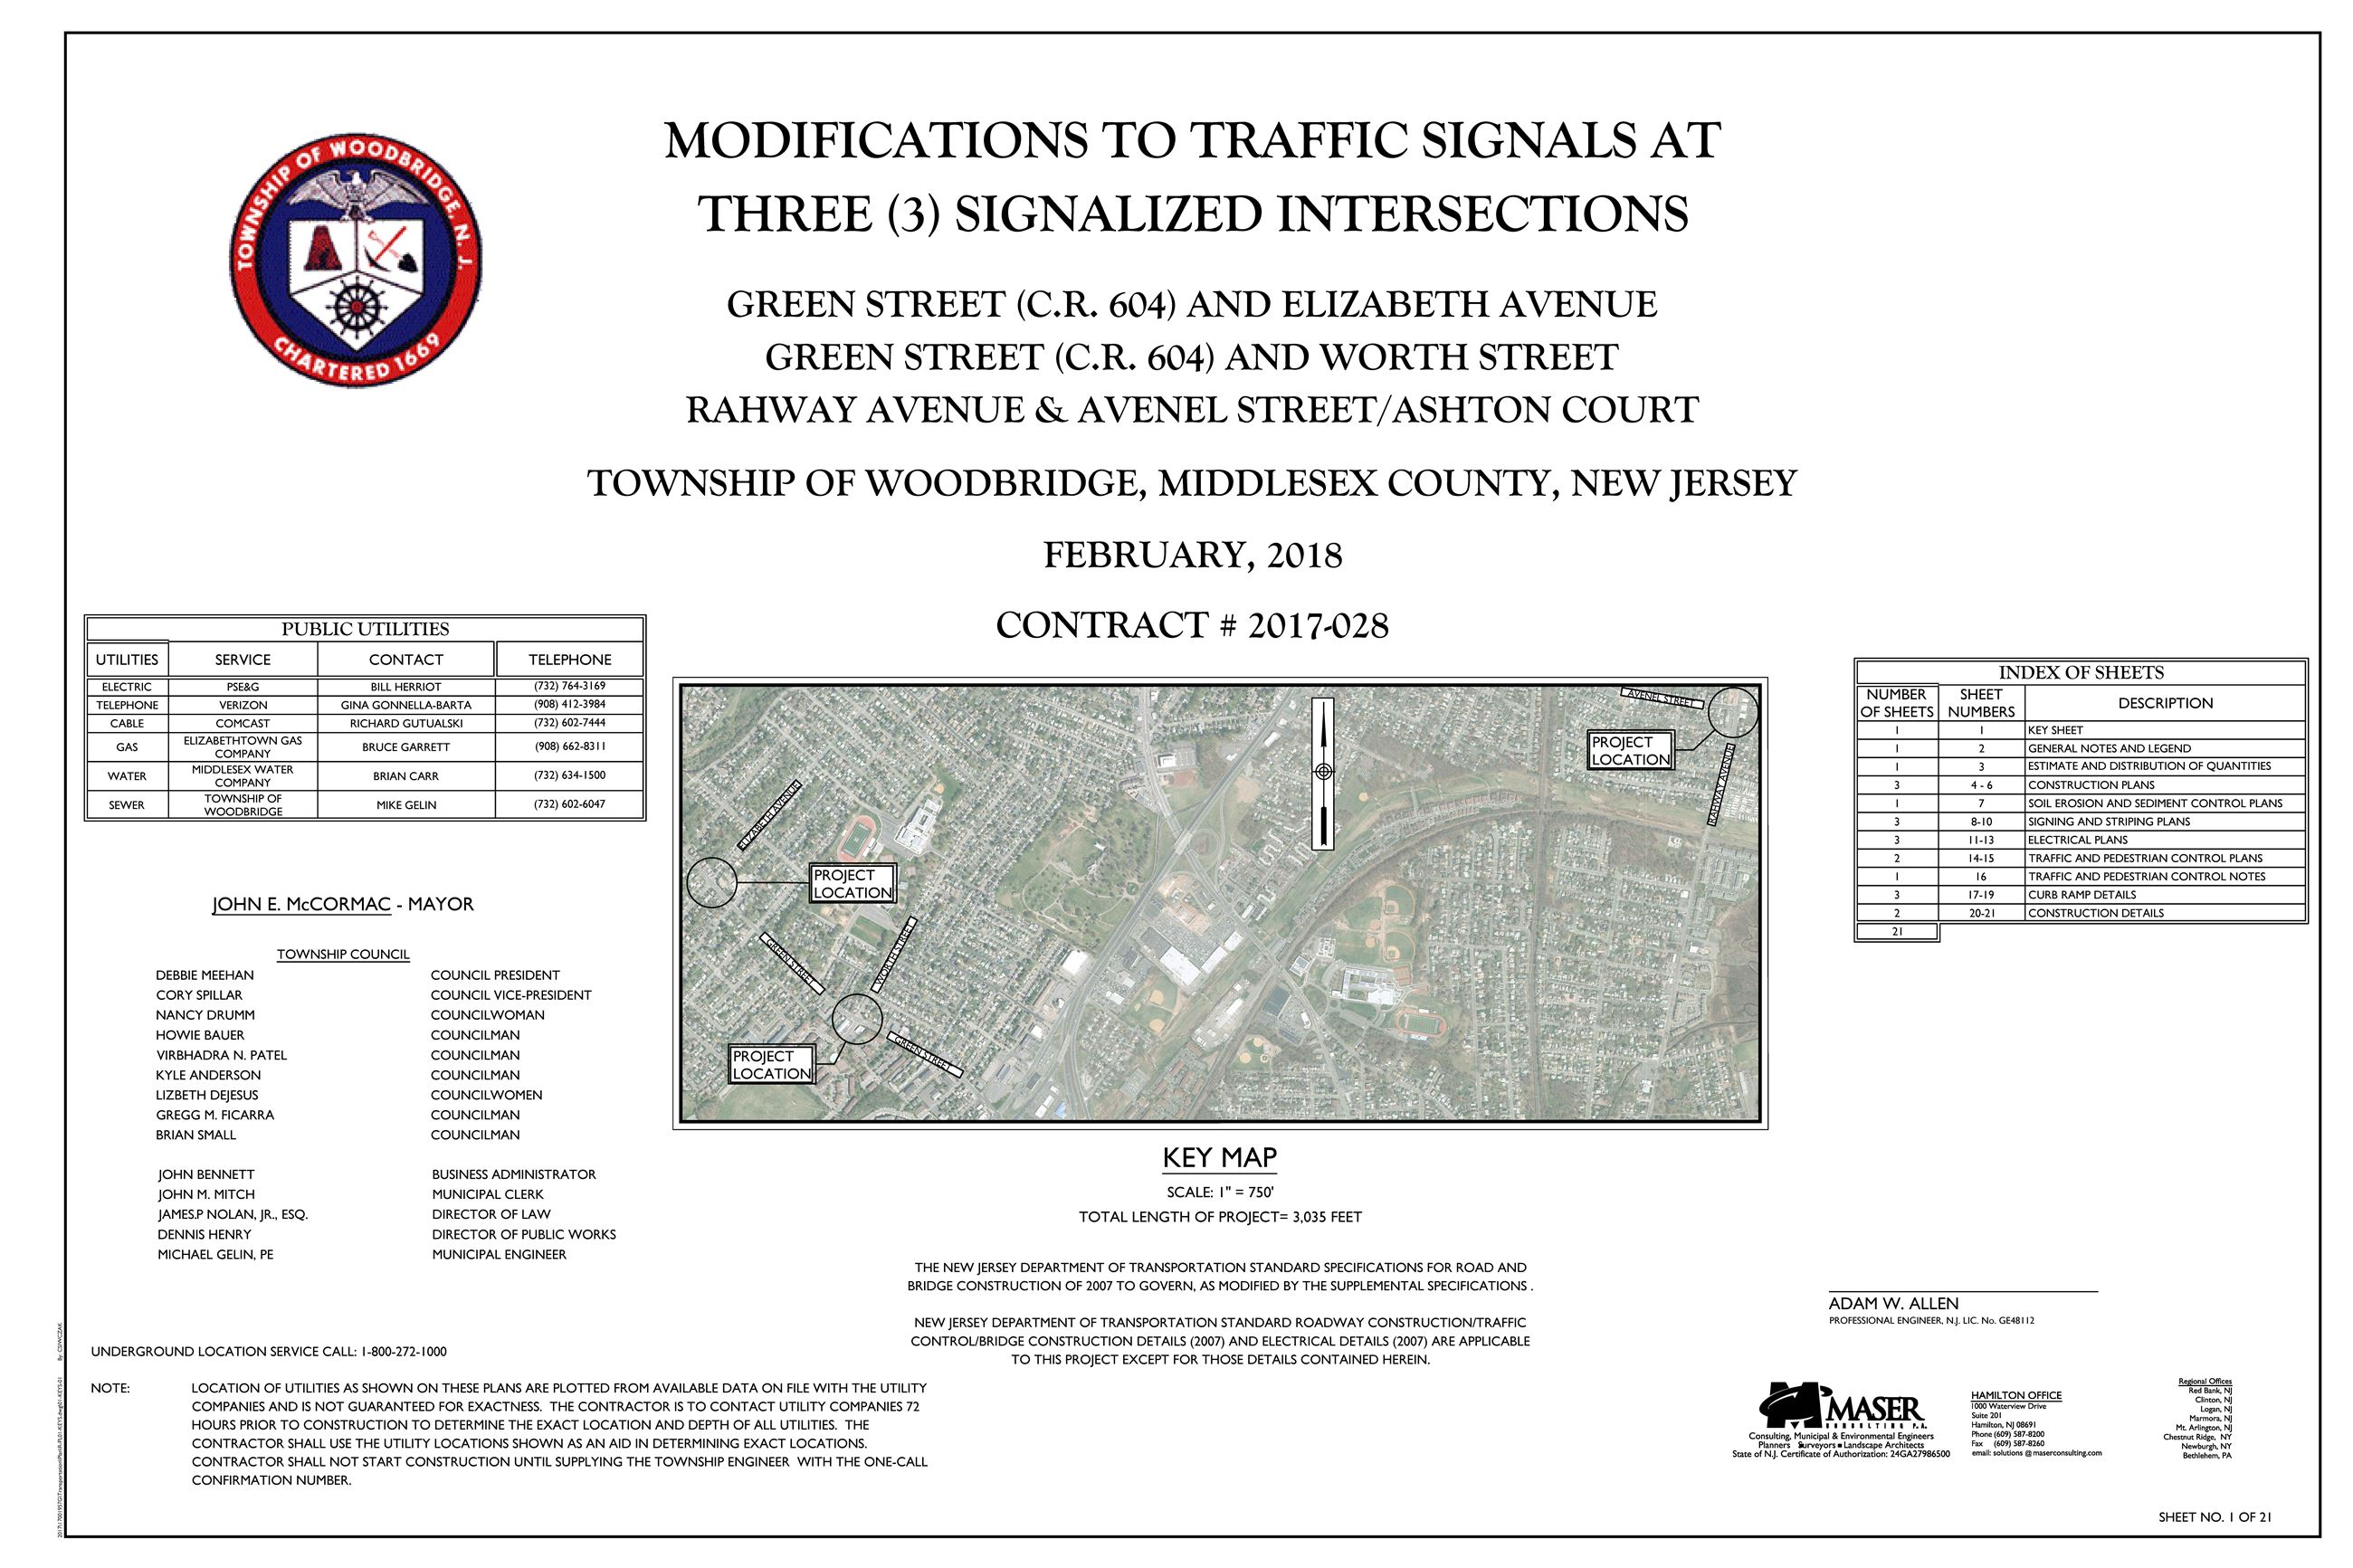 Modifications to Traffic Signals at Three Signalized Intersections-TITLE SHEET